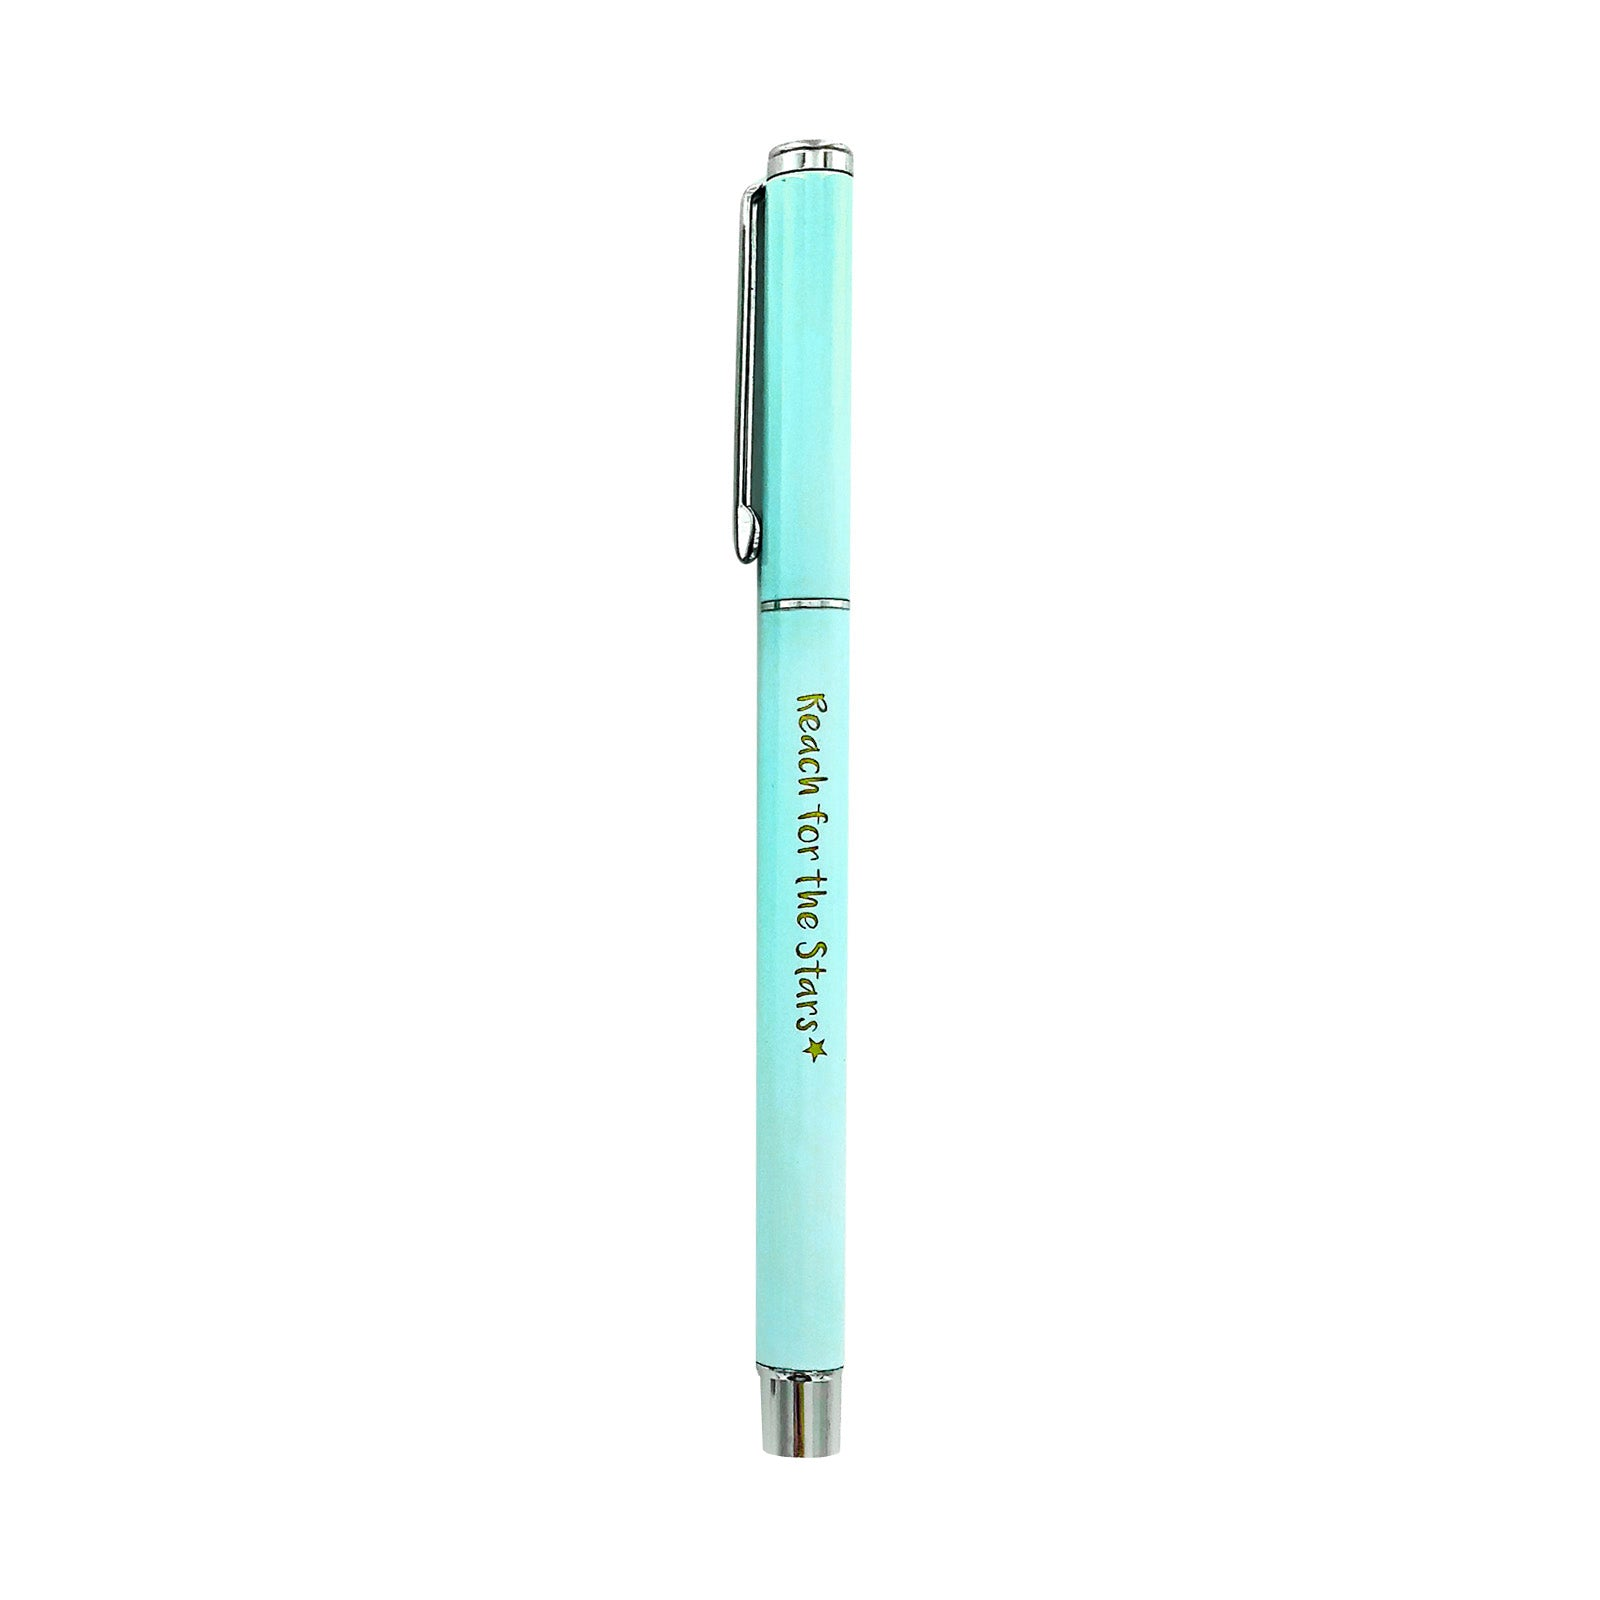 Metal Pen - Reach For The Stars - Turquoise